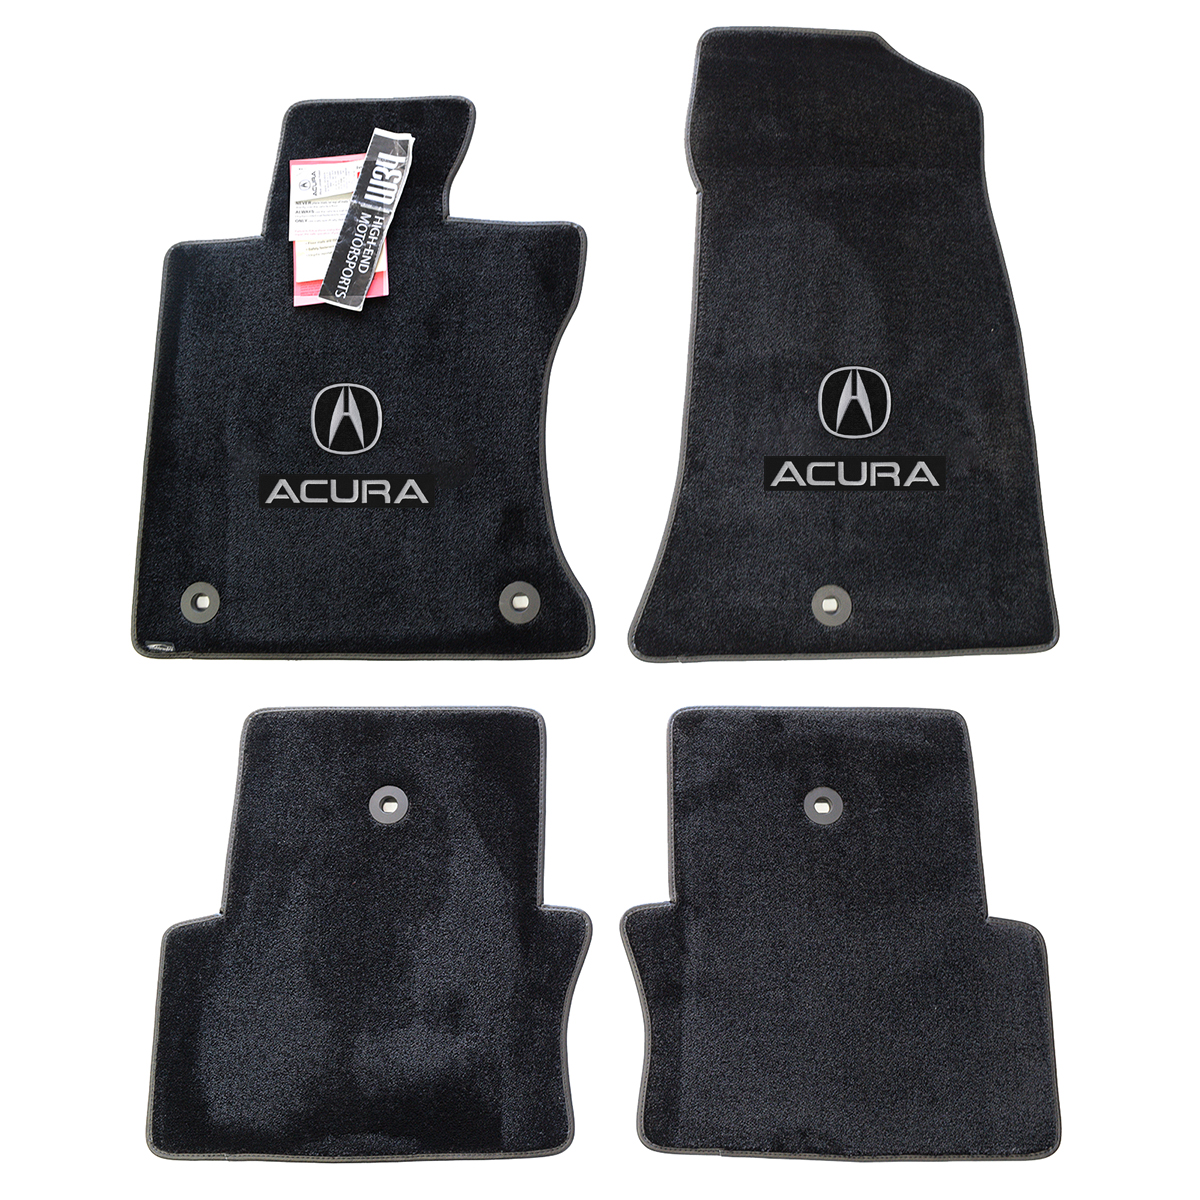 Acura Tlx Pricing: Acura TLX Floor Mats